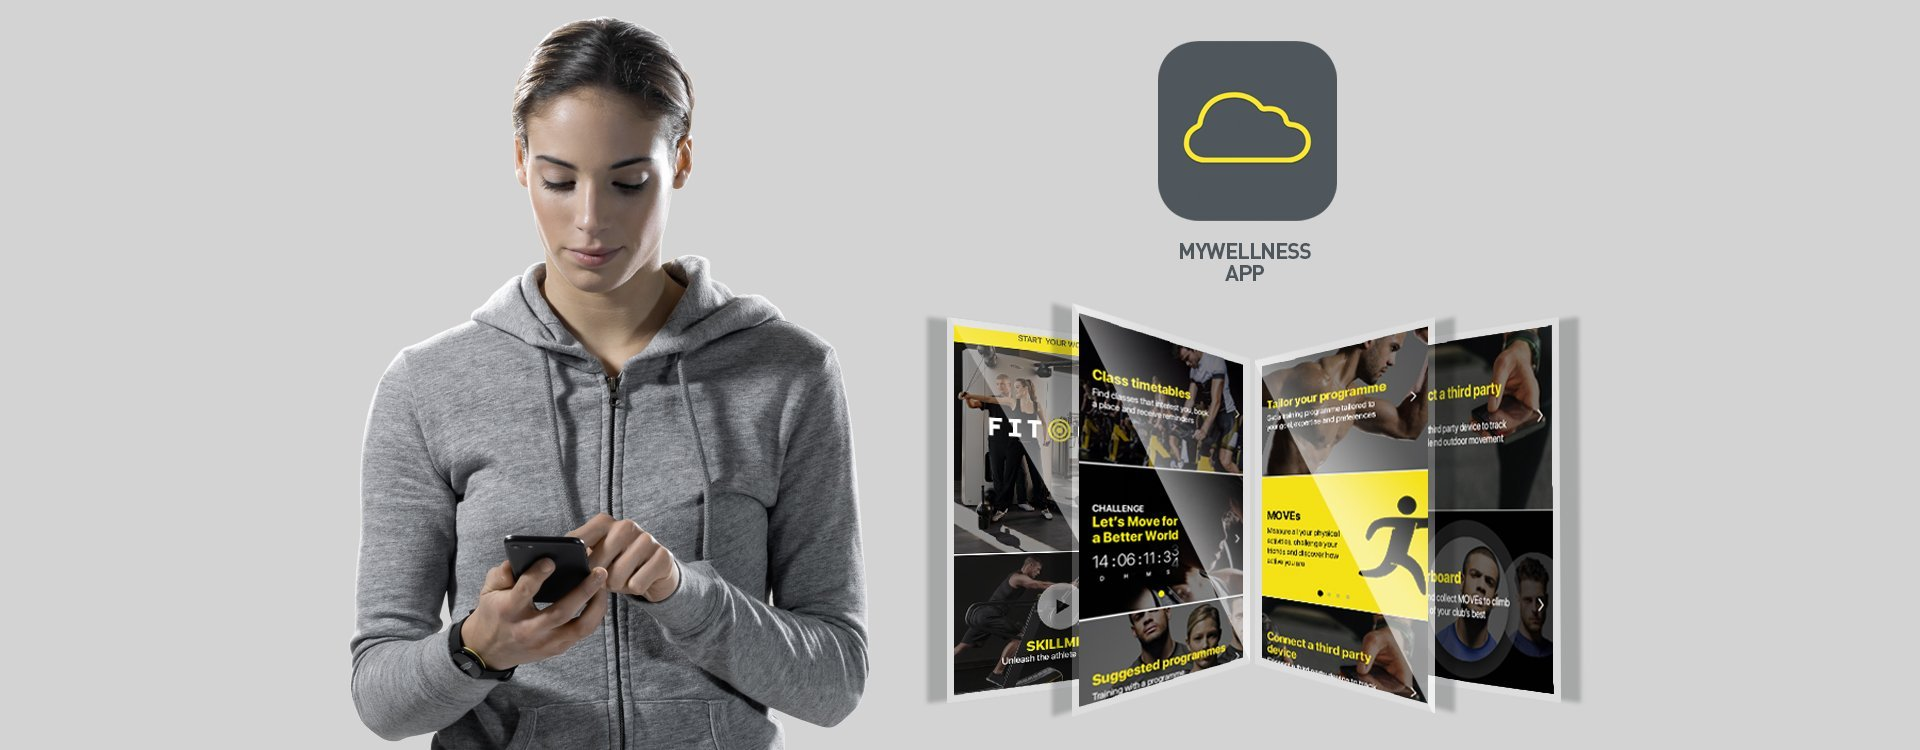 Enjoy training with mywellness app